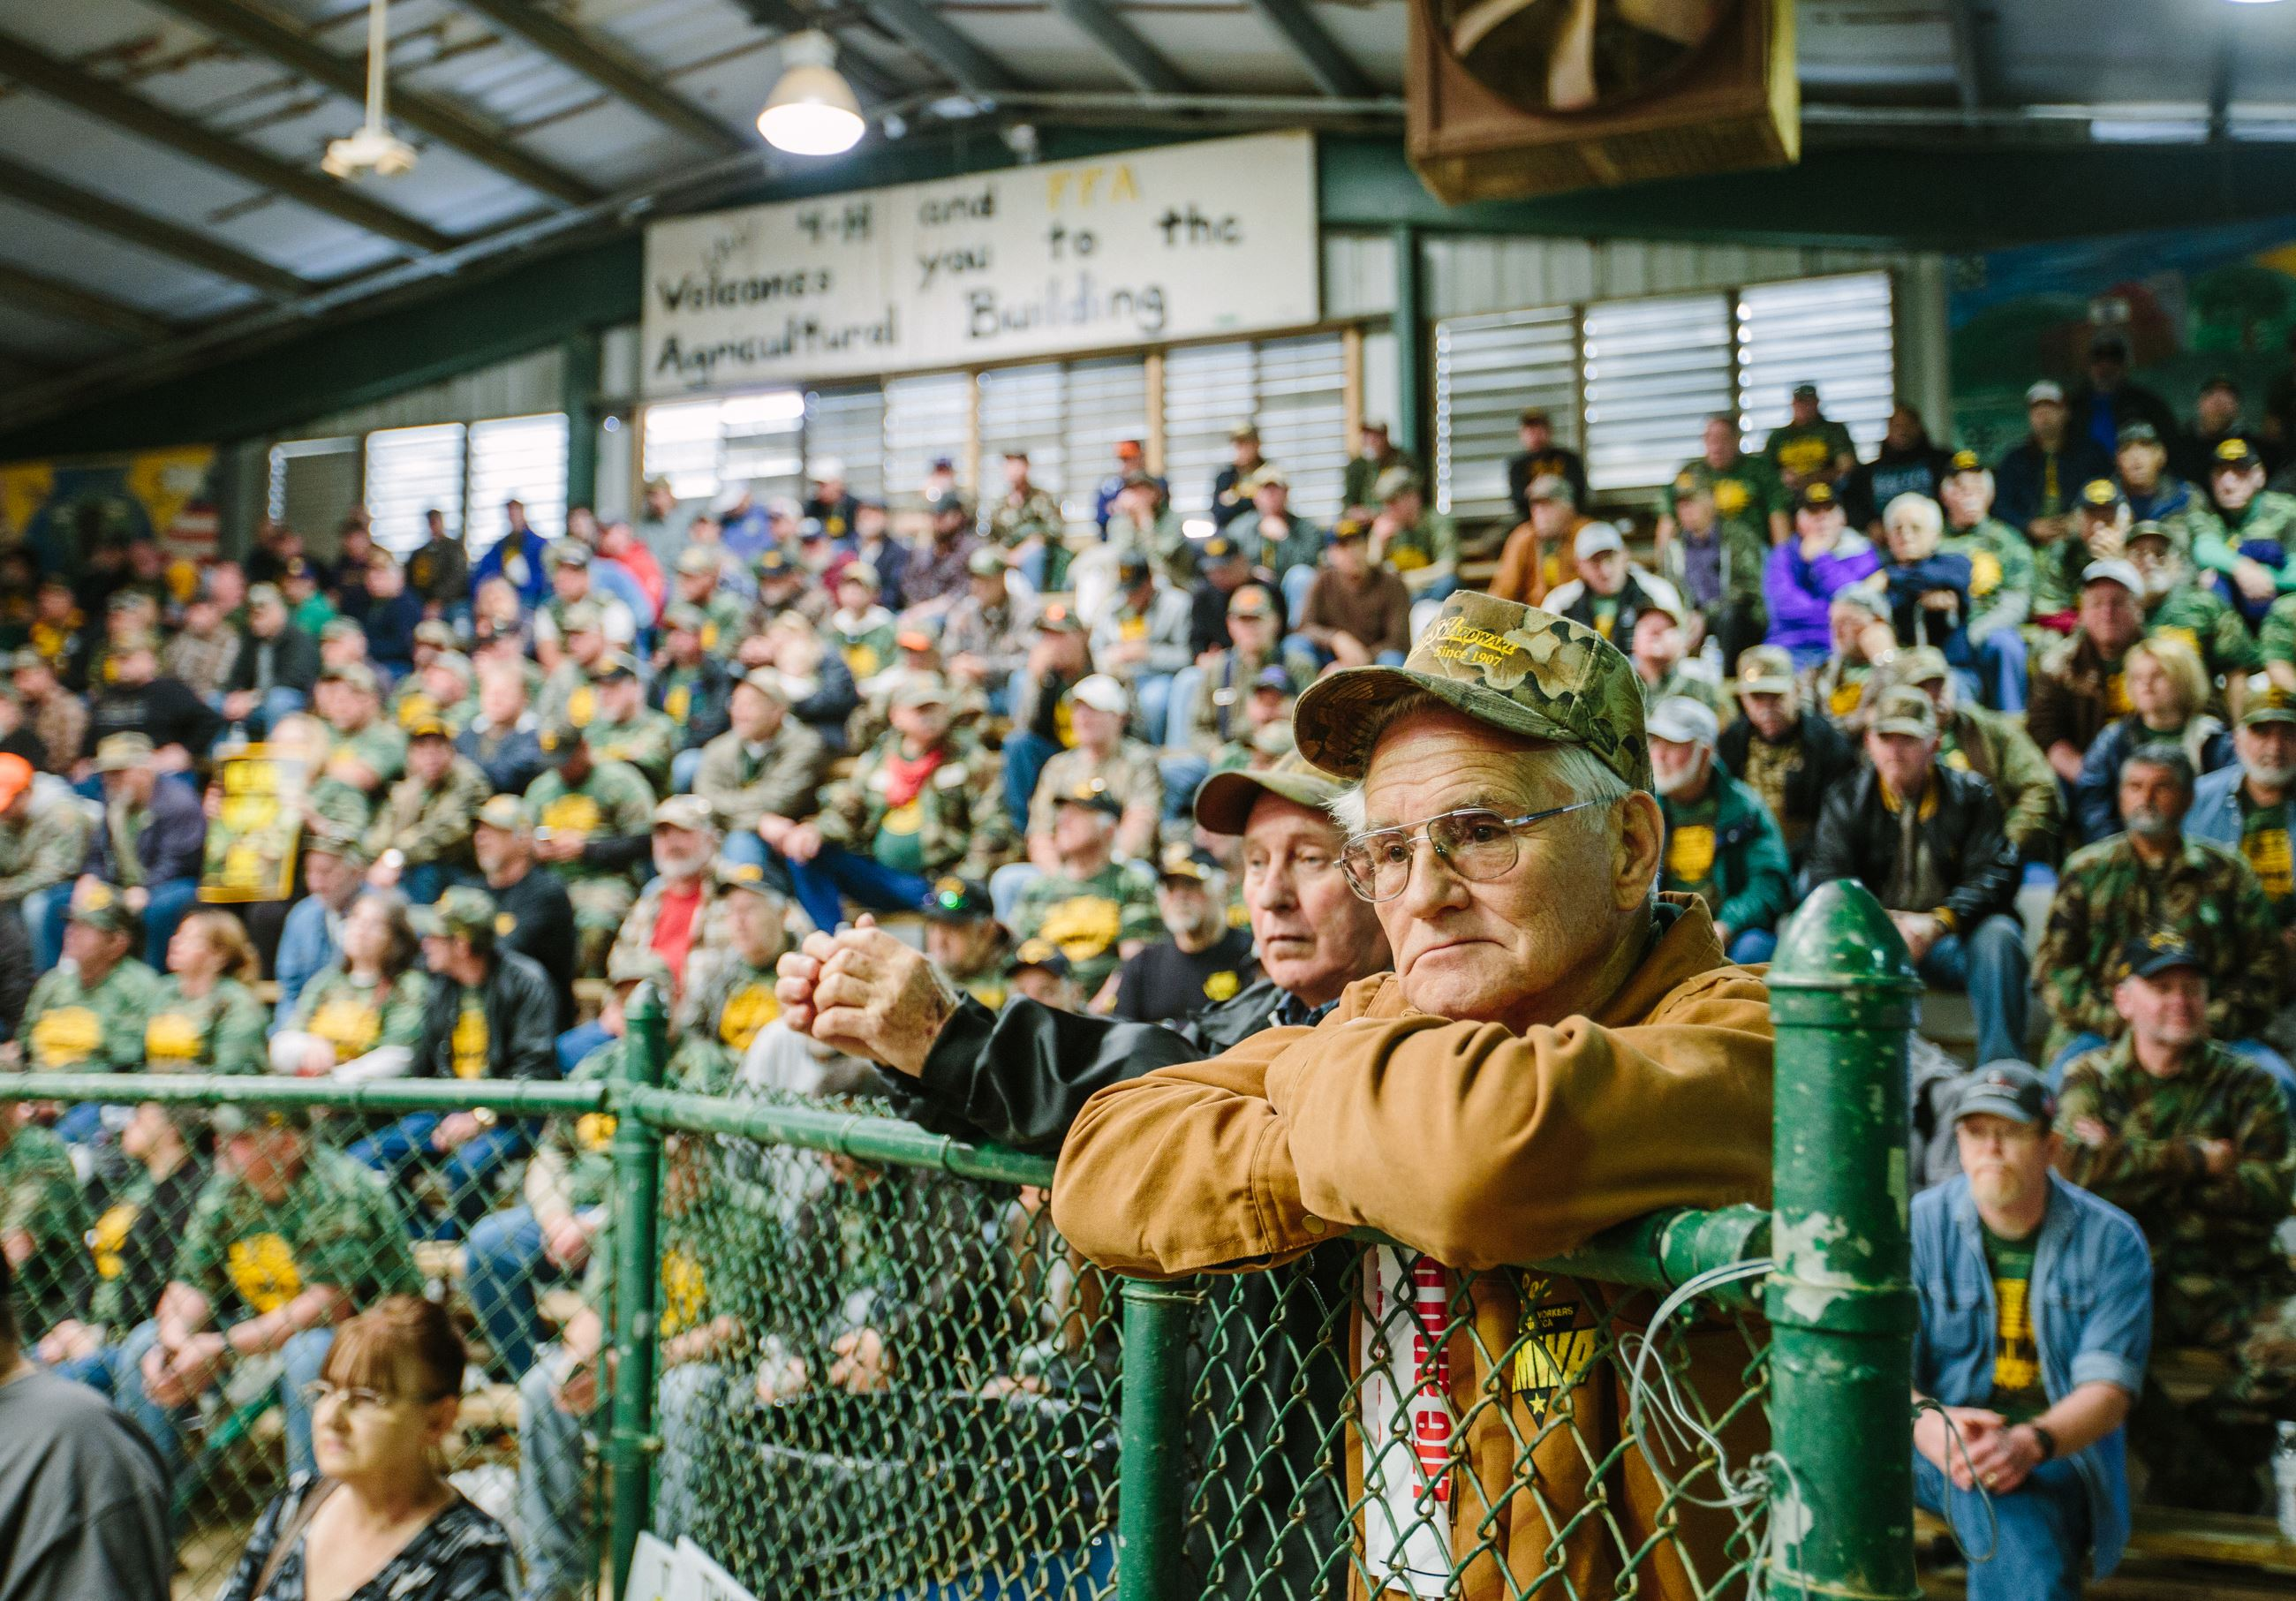 20160401arUMWA-March07-4 Lee Harris, of Rupert, W.Va., joins thousands of mine workers and supporters at the Greene County Fairgrounds in Waynesburg for a rally by the United Mine Workers of America on April 1.